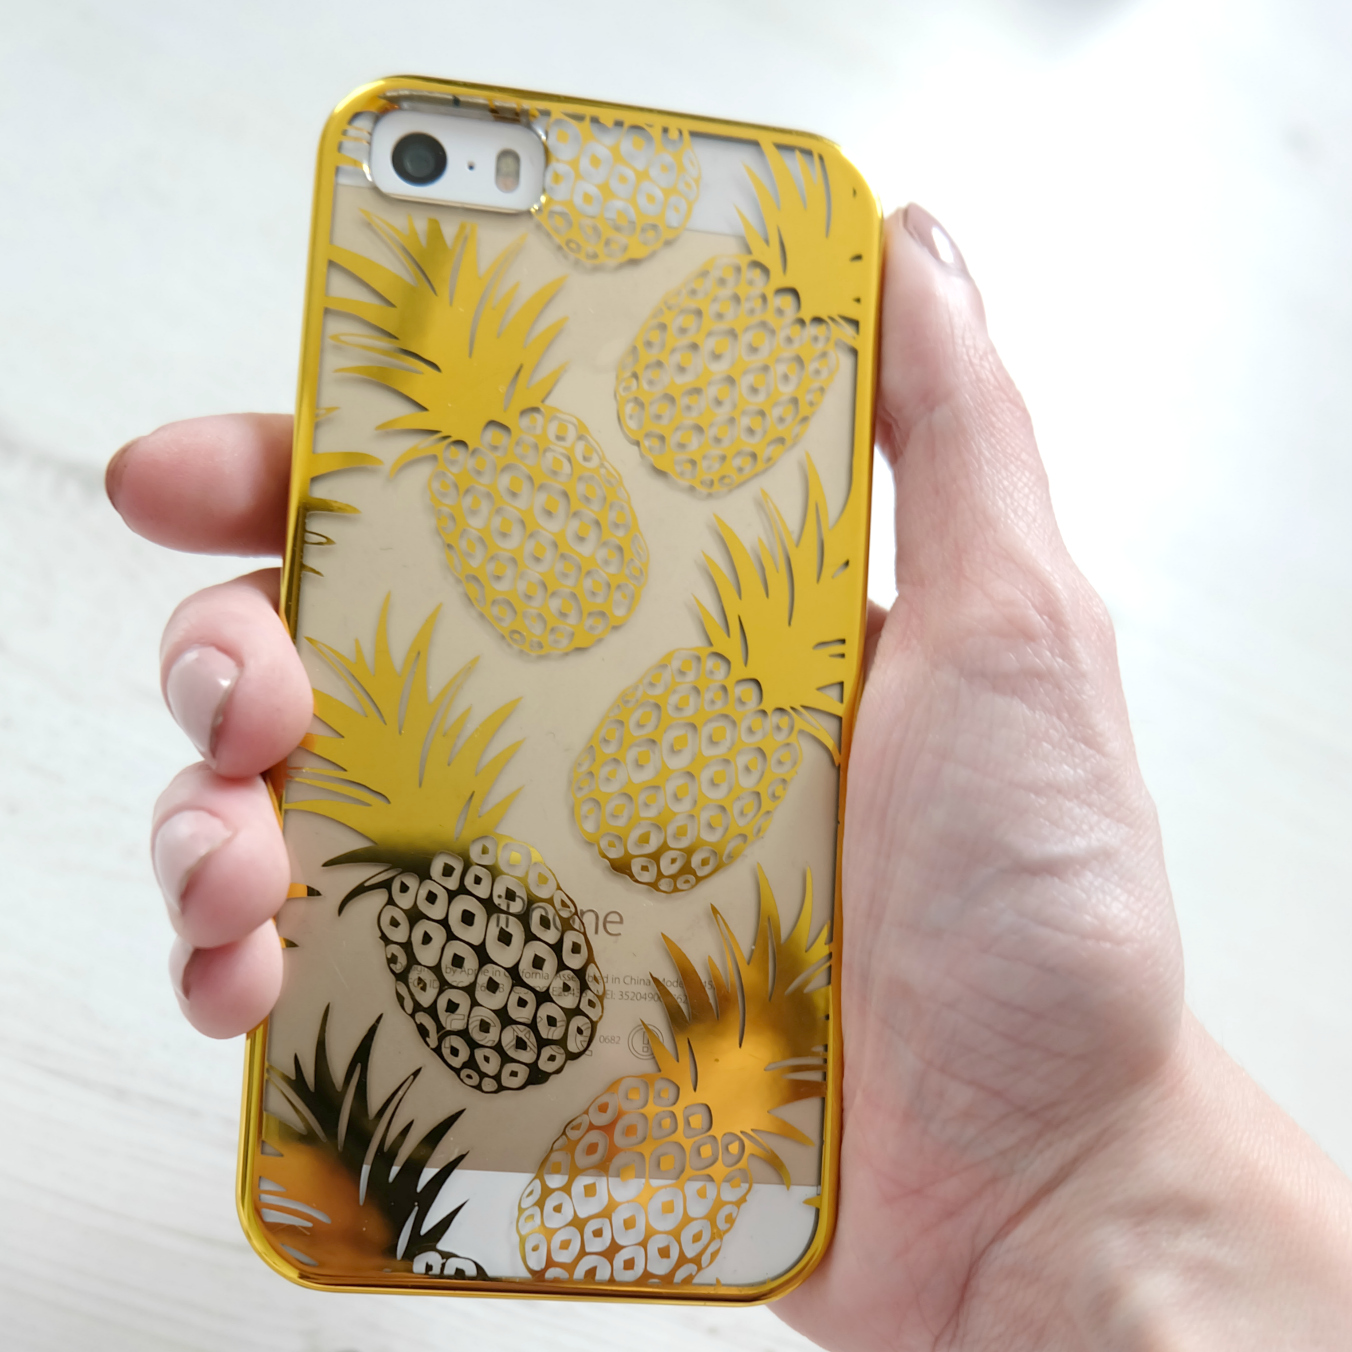 Skinnydip London Pineapple phone case